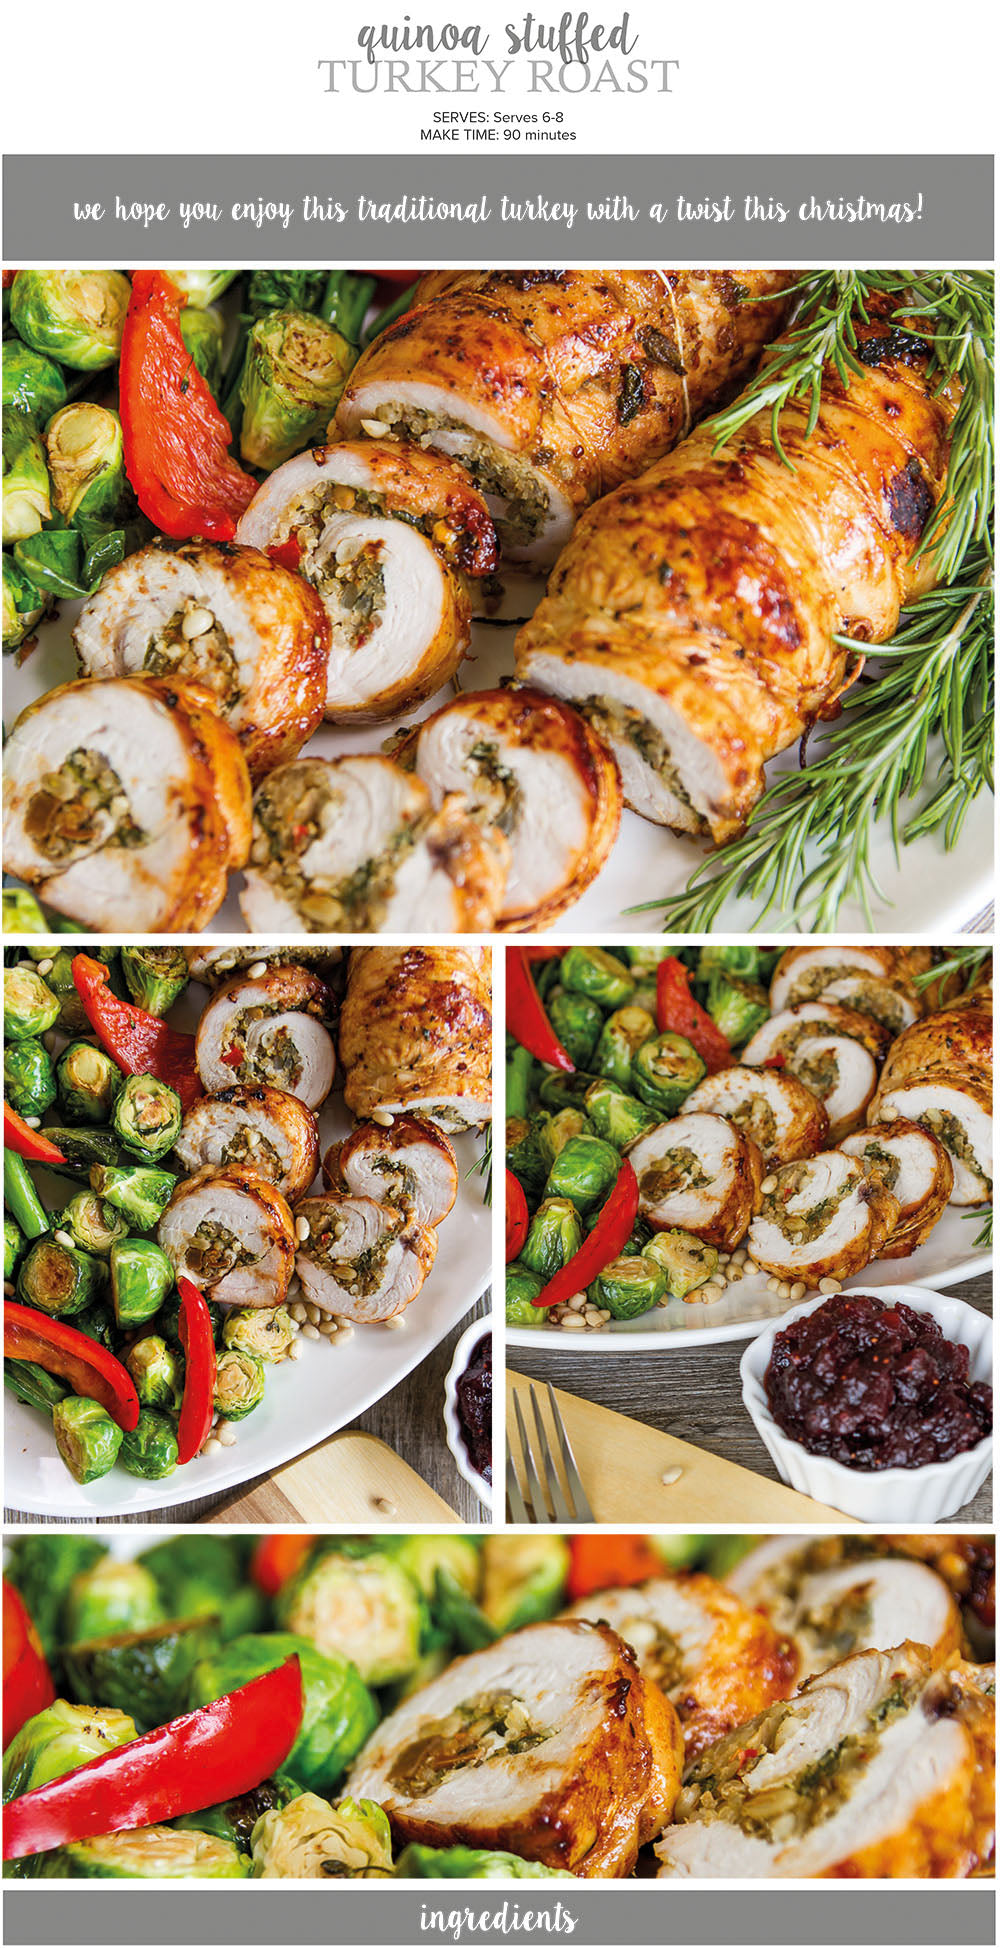 Quinoa stuffed turkey recipe